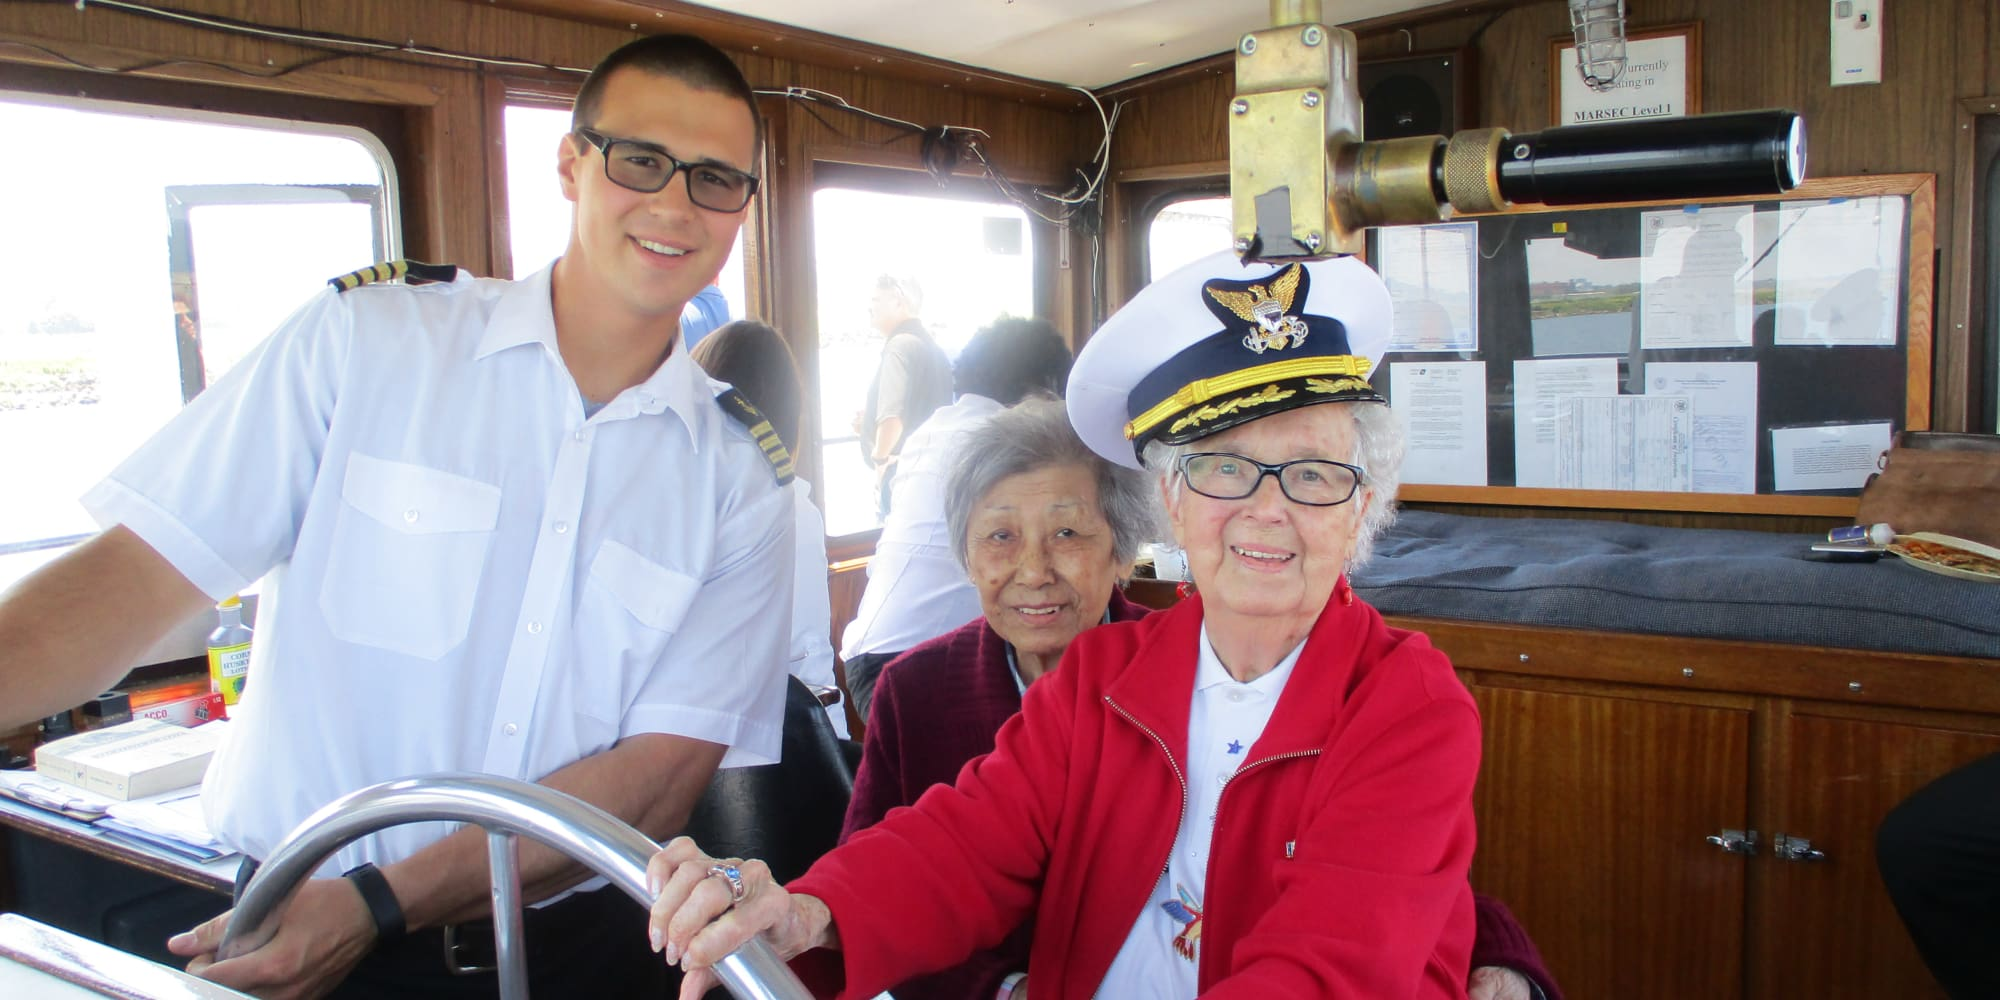 A resident from Mulberry Gardens Assisted Living in Munroe Falls, Ohio steering a boat